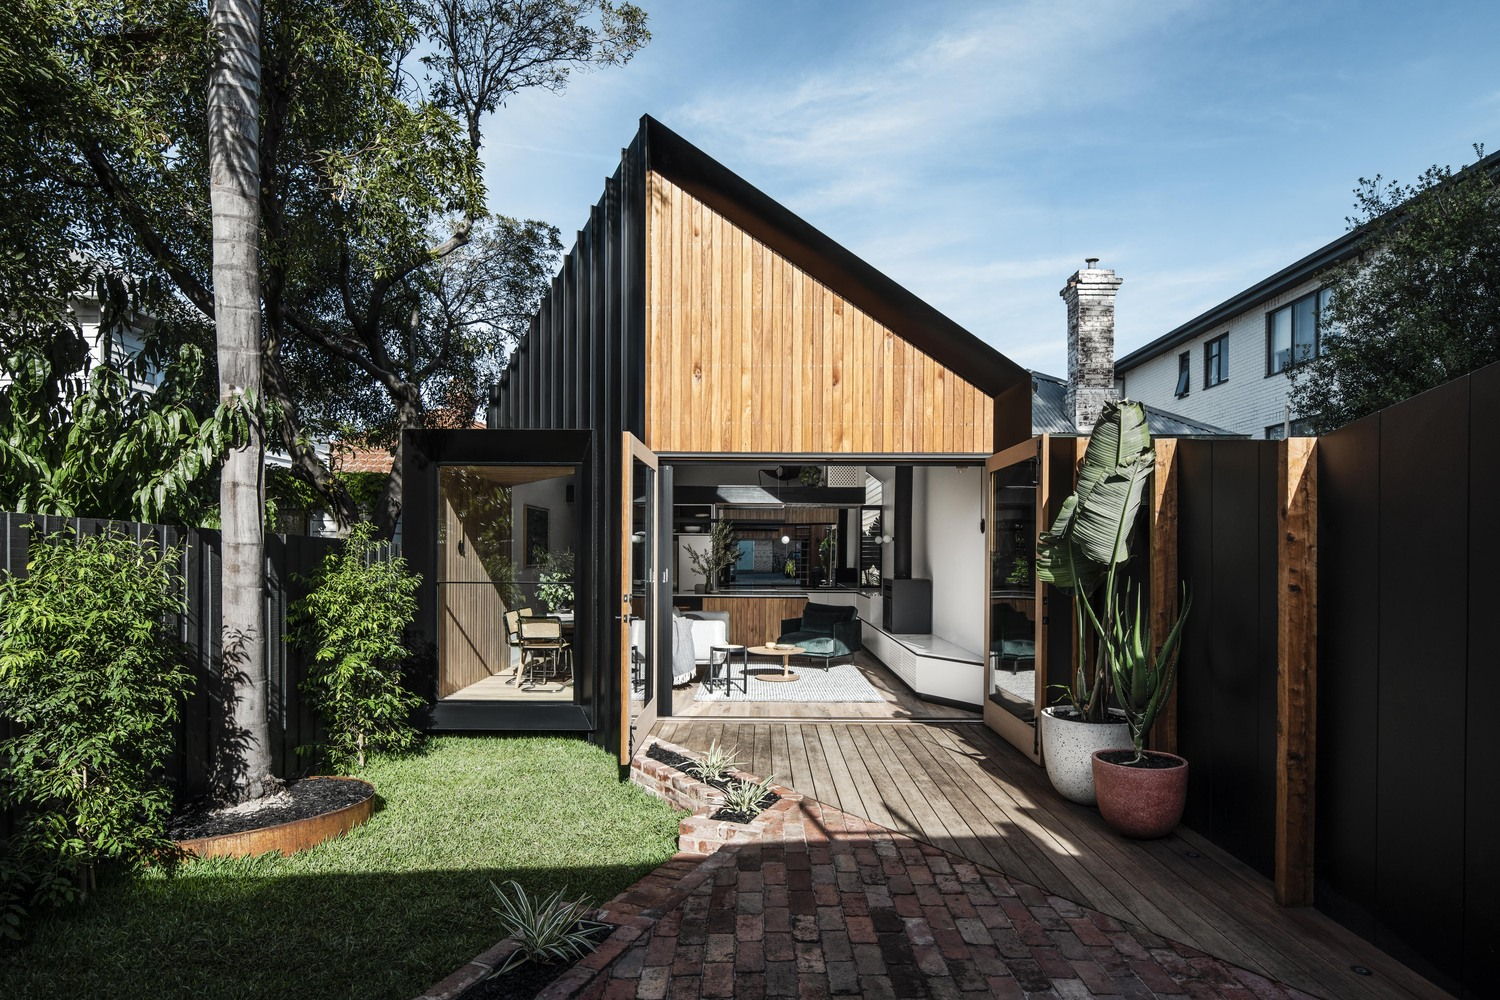 Timber and metal house with angled roof and wooden porch.